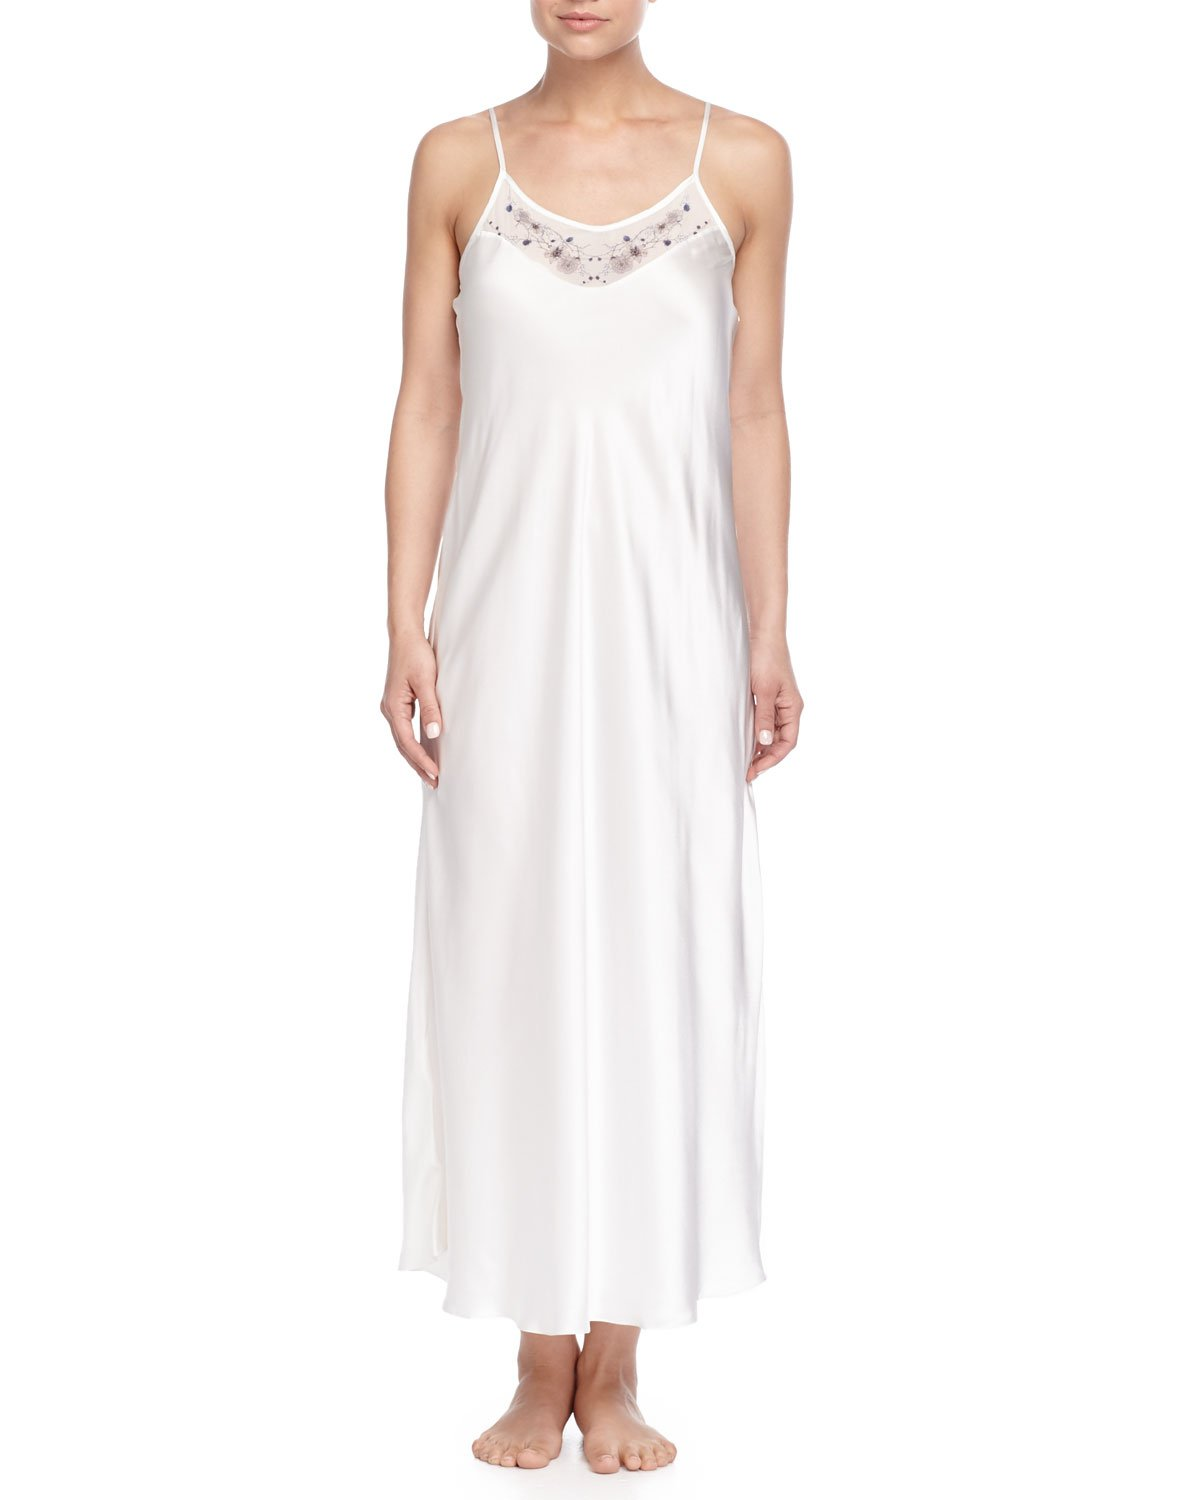 Lyst - Meng Satin Slip Nightgown in White af979cc2e